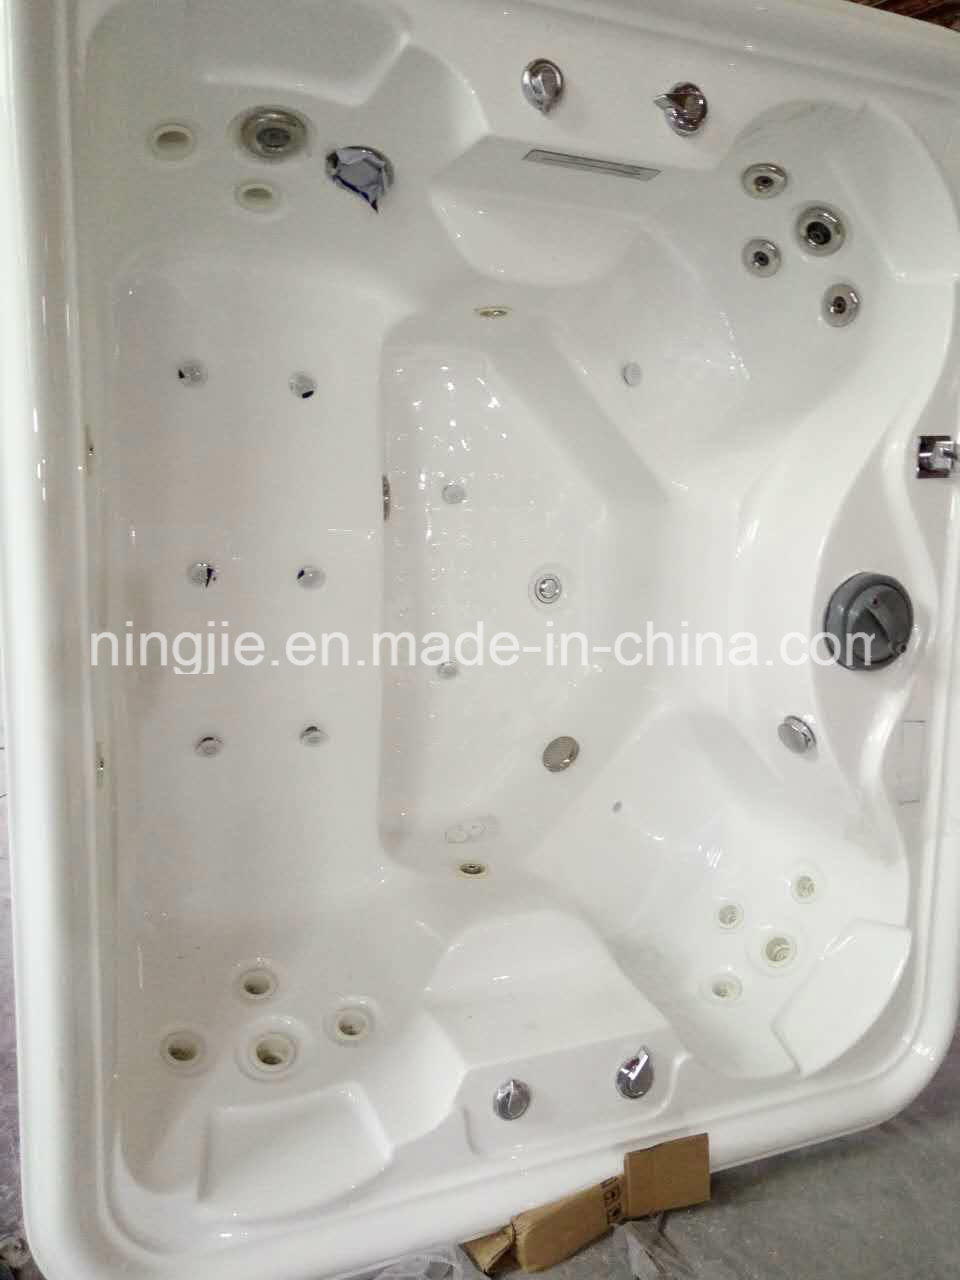 Luxury Outdoor Massage SPA Sanitary Ware Hot Tub (713A)